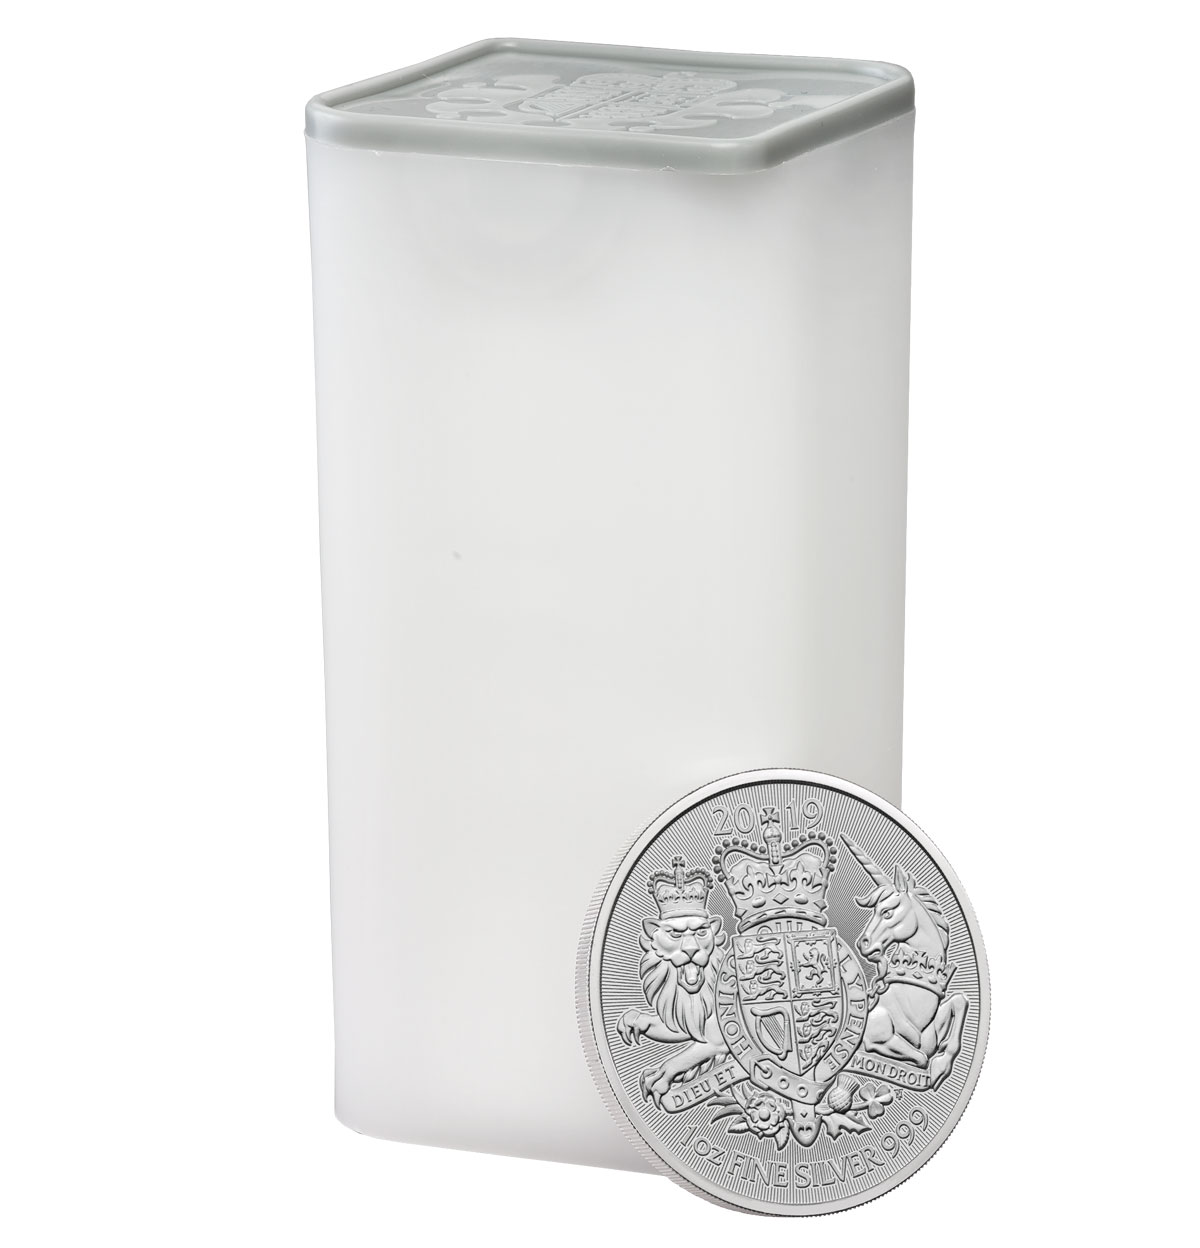 Roll of 25 - 2019 Great Britain 1 oz Silver Royal Arms £2 Coins GEM BU